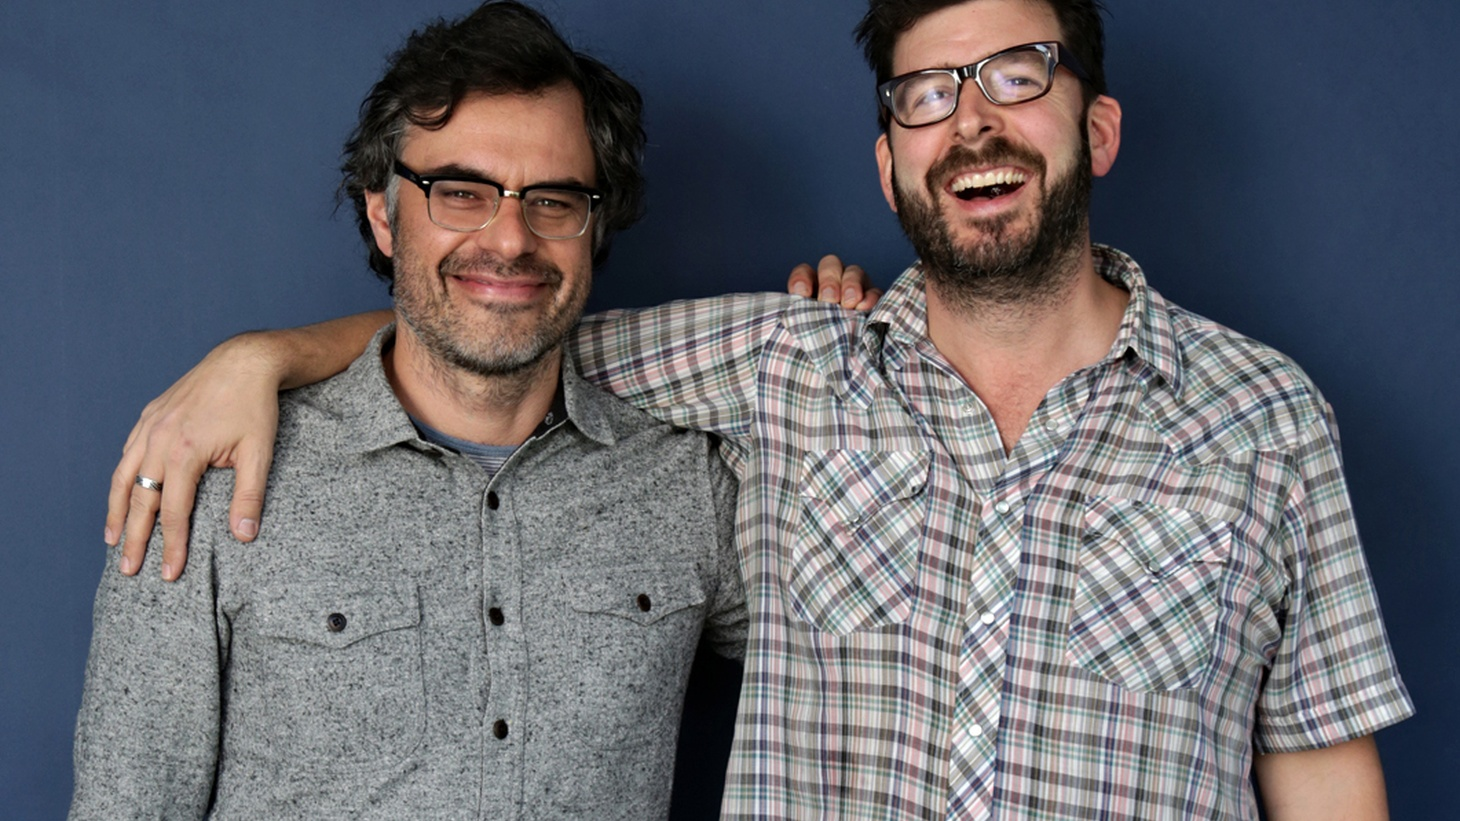 Jemaine Clement is best known as part of Flight of the Conchords. In his Guest DJ set, he shares some of the artists that inspired the Kiwi comedy duo and delves into a couple tracks that scared him as a kid.